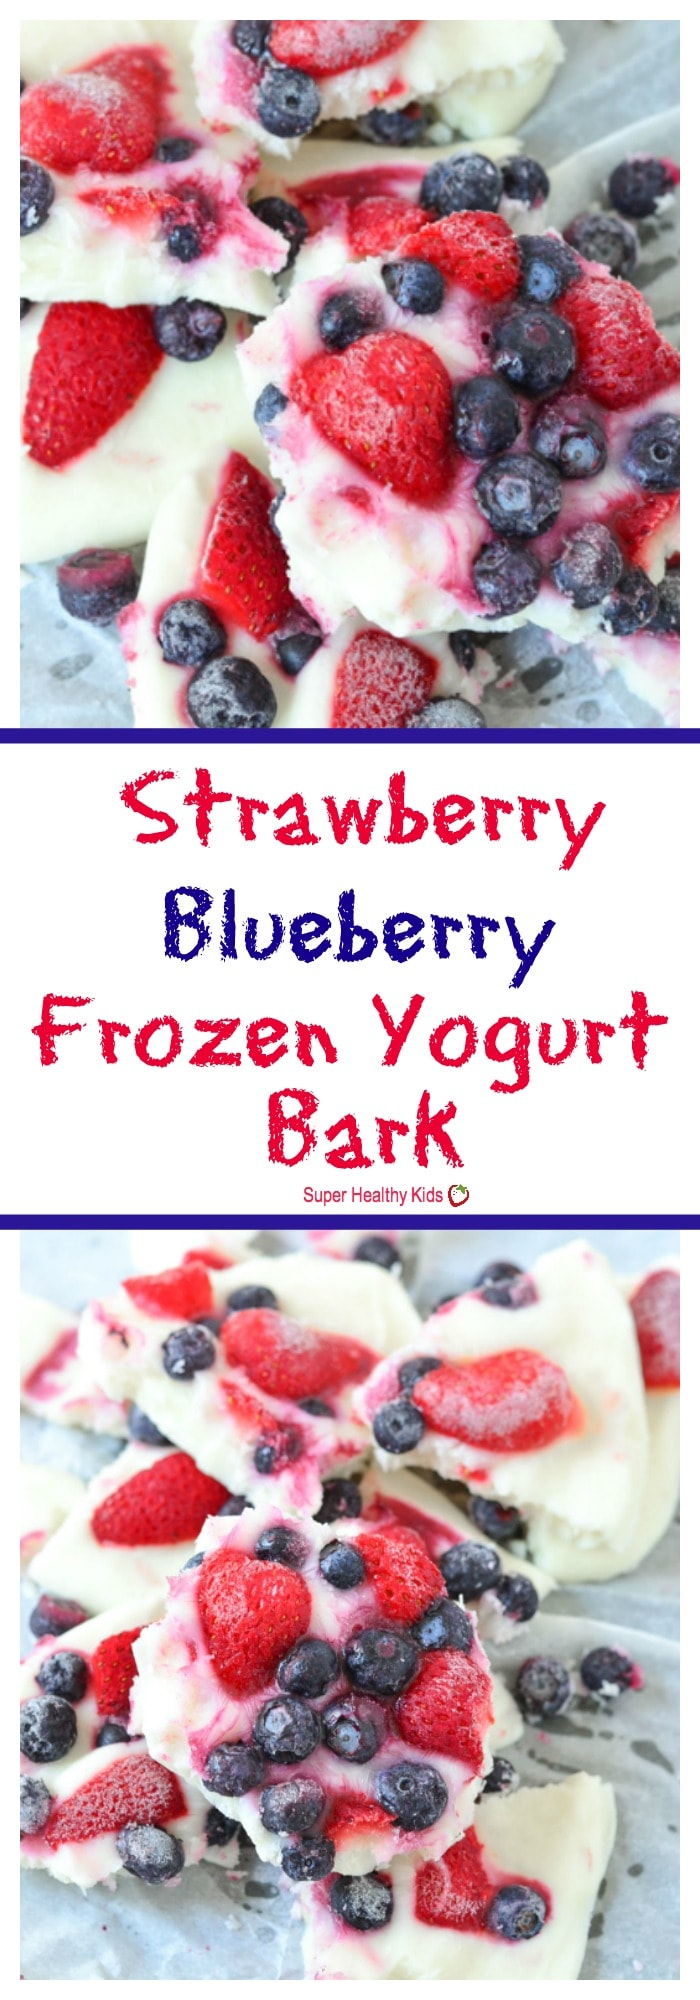 FOOD - Strawberry Blueberry Frozen Yogurt Bark. A healthy and refreshing frozen treat for summer. Super easy to make, and a great thing to have in your freezer for an afternoon snack. http://www.superhealthykids.com/strawberry-blueberry-frozen-yogurt-bark/